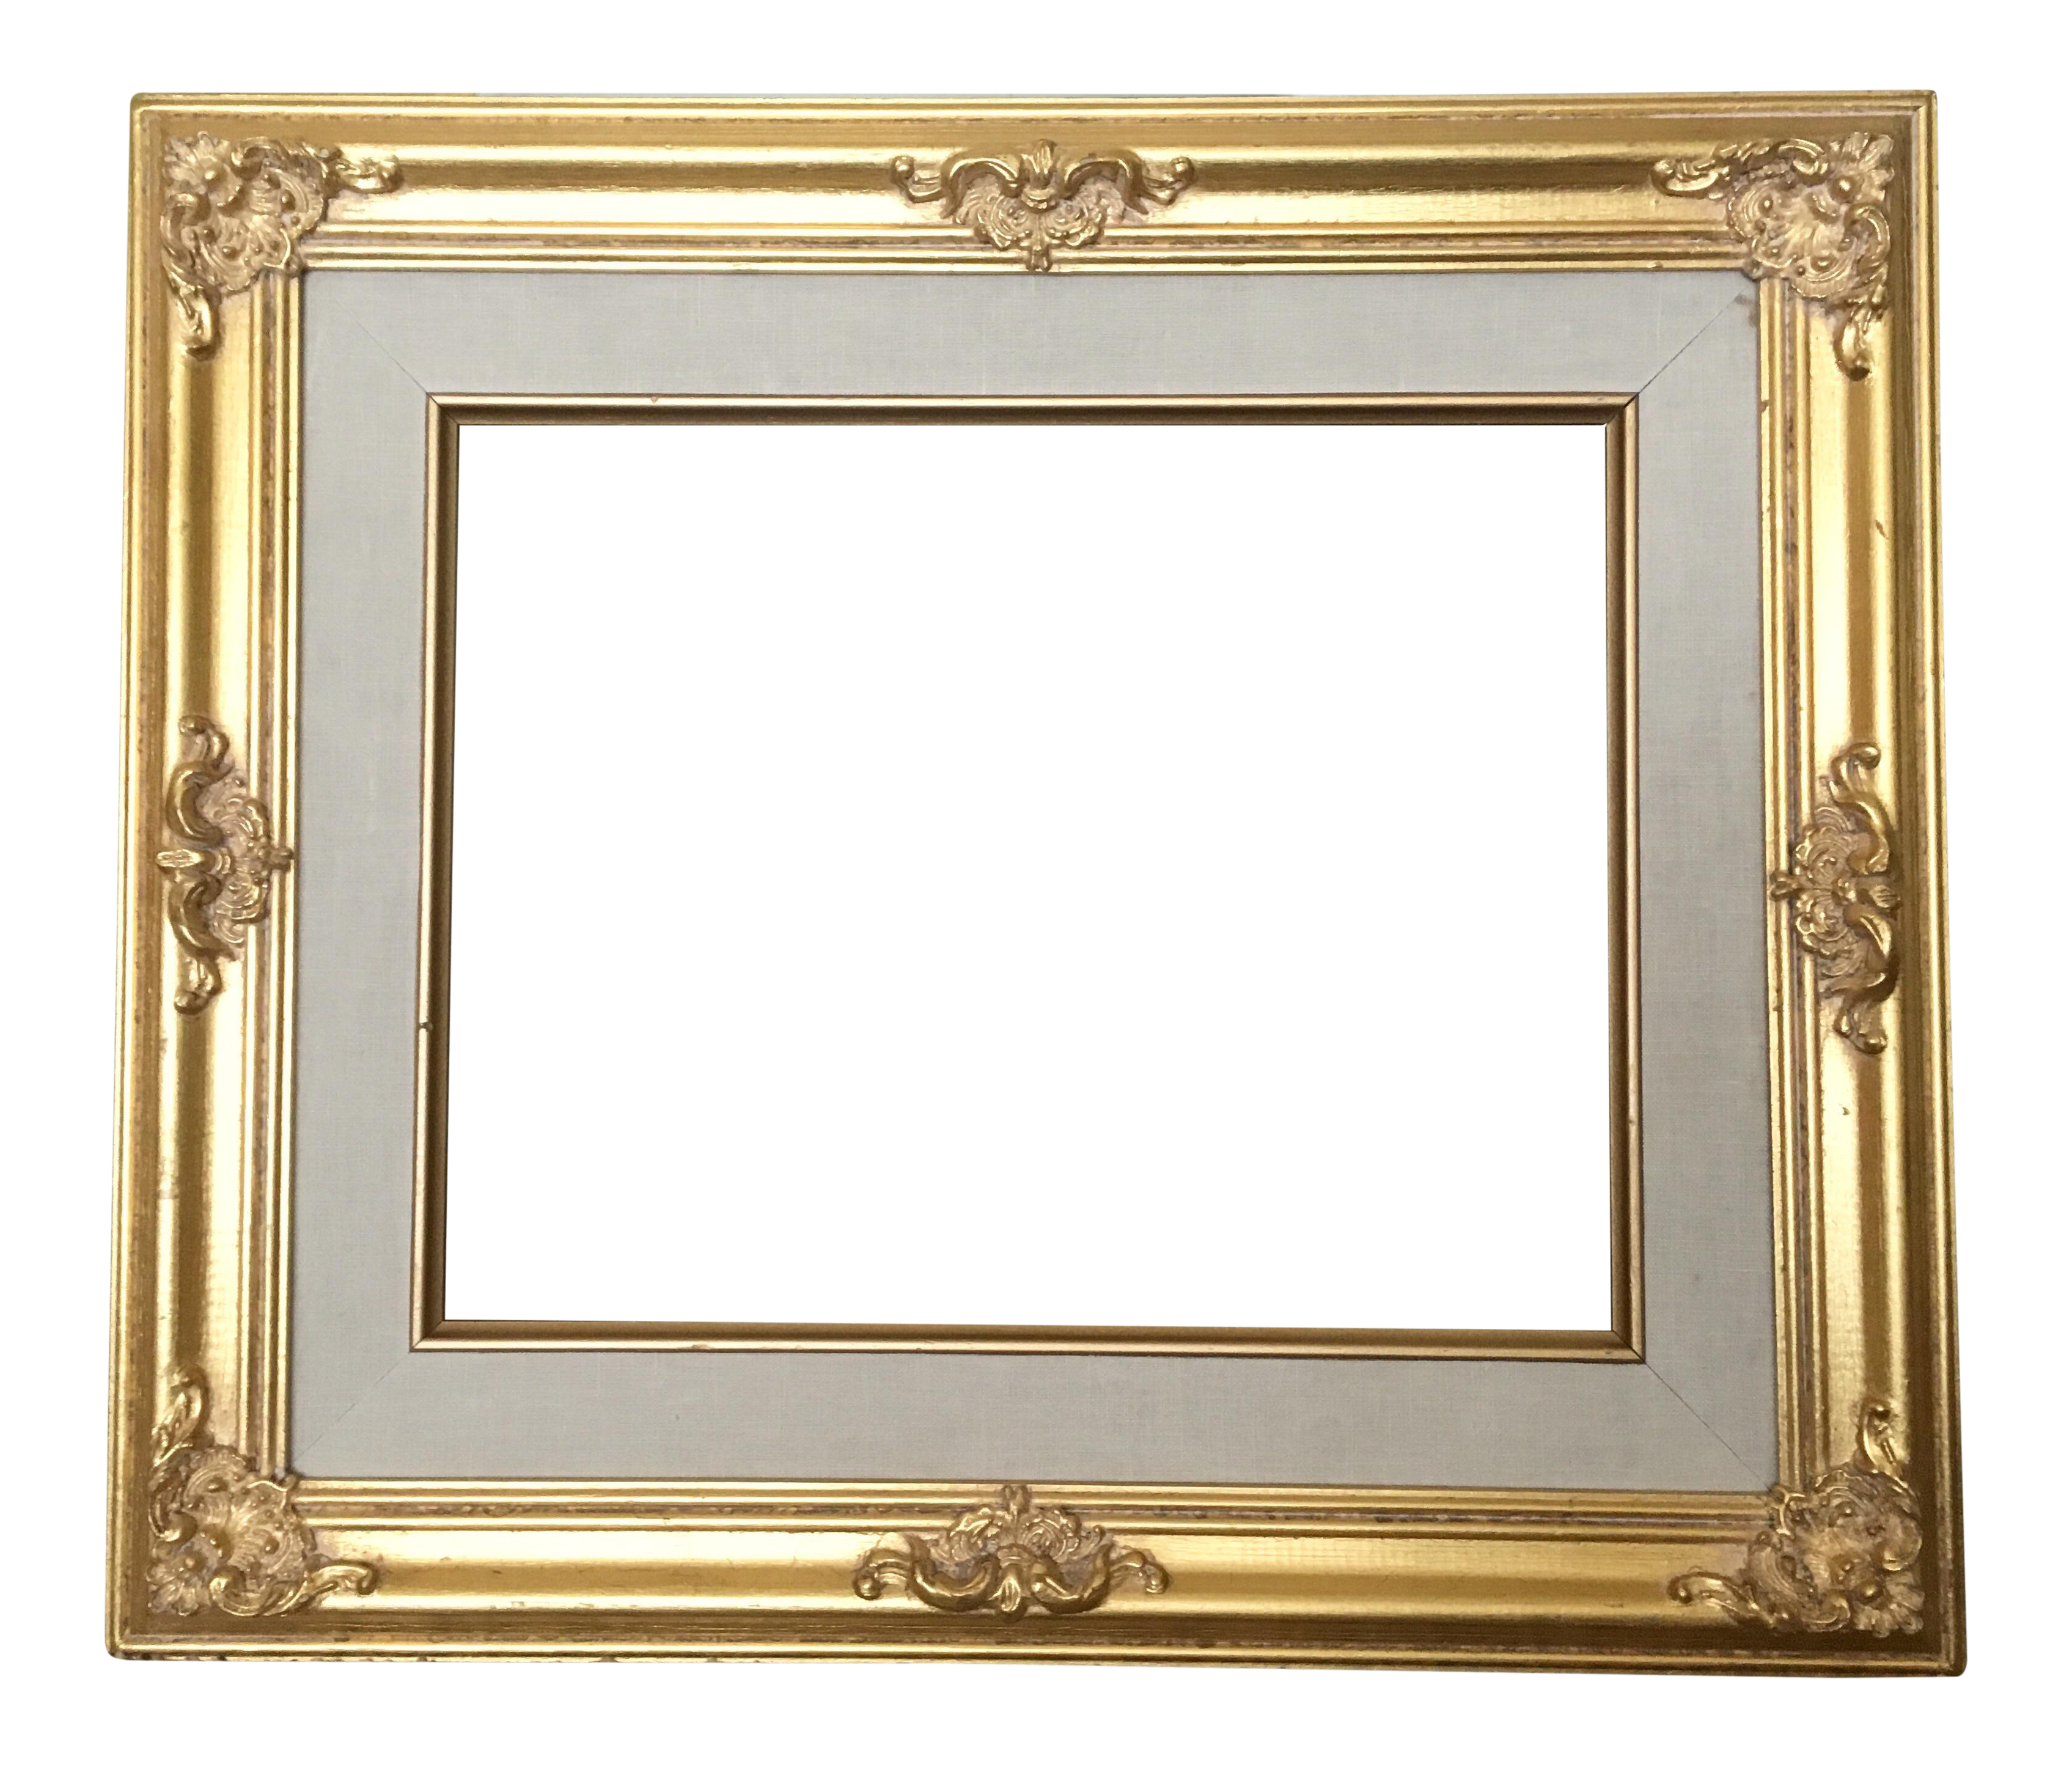 French Gold Baroque Frame | Chairish